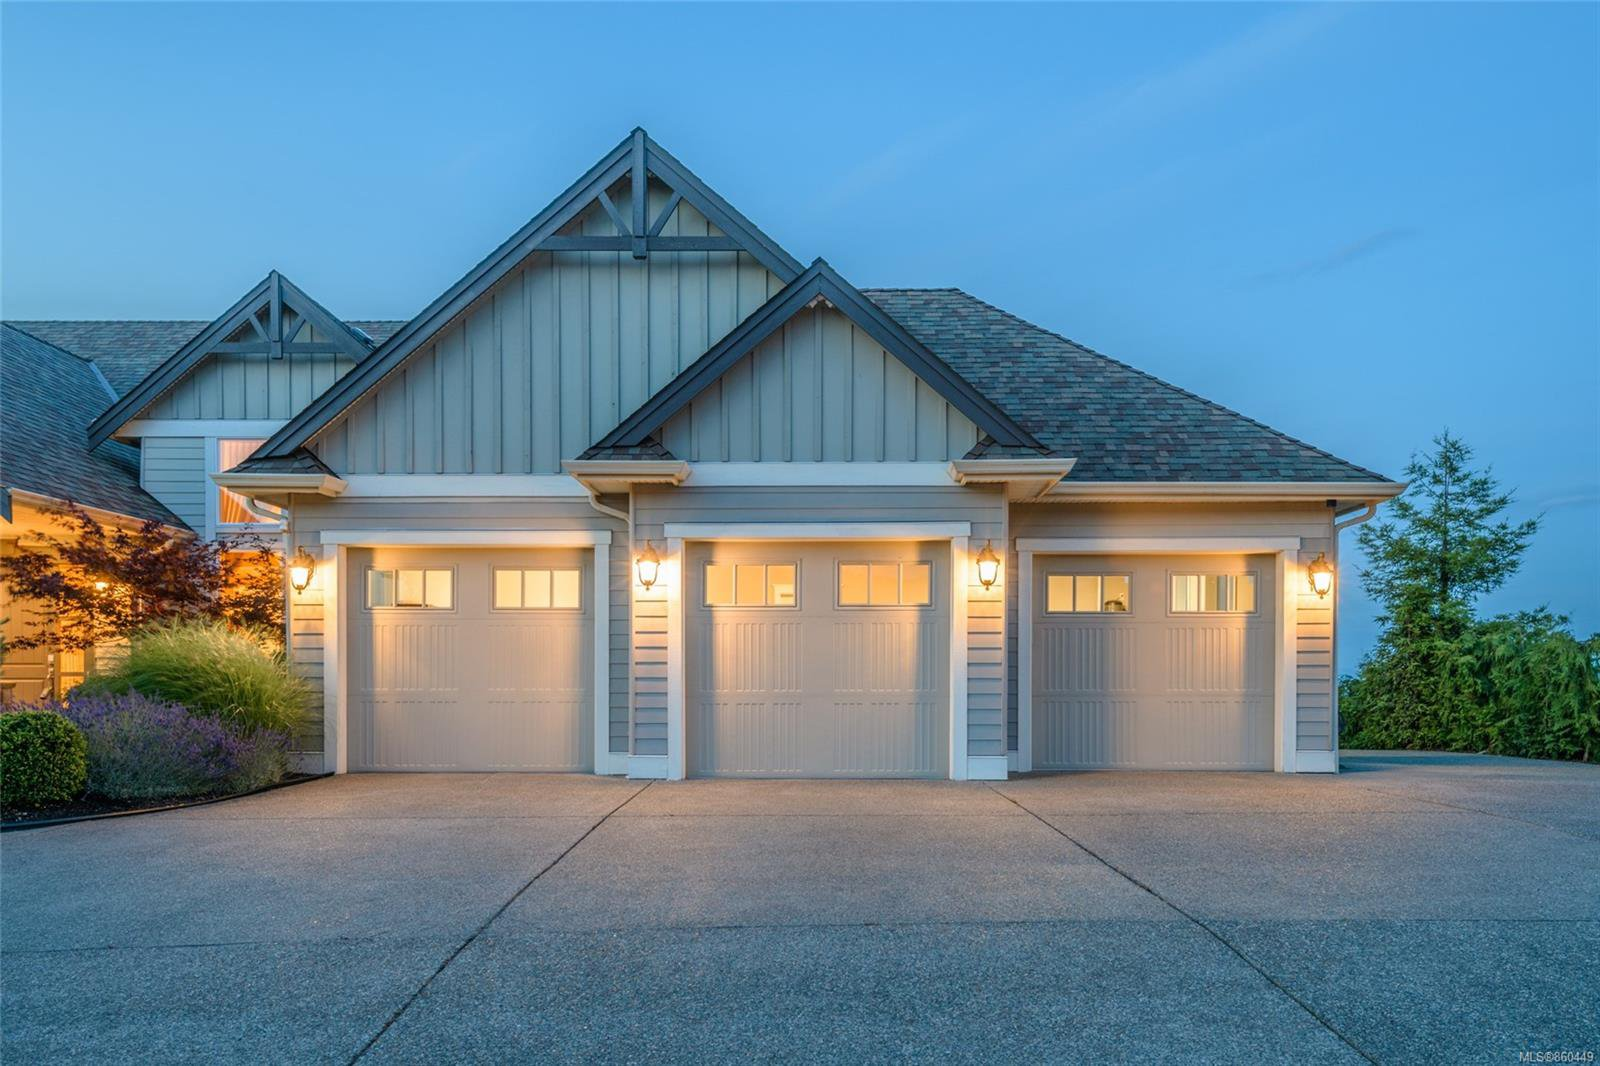 Photo 2: Photos: 5019 Hinrich View in : Na North Nanaimo House for sale (Nanaimo)  : MLS®# 860449